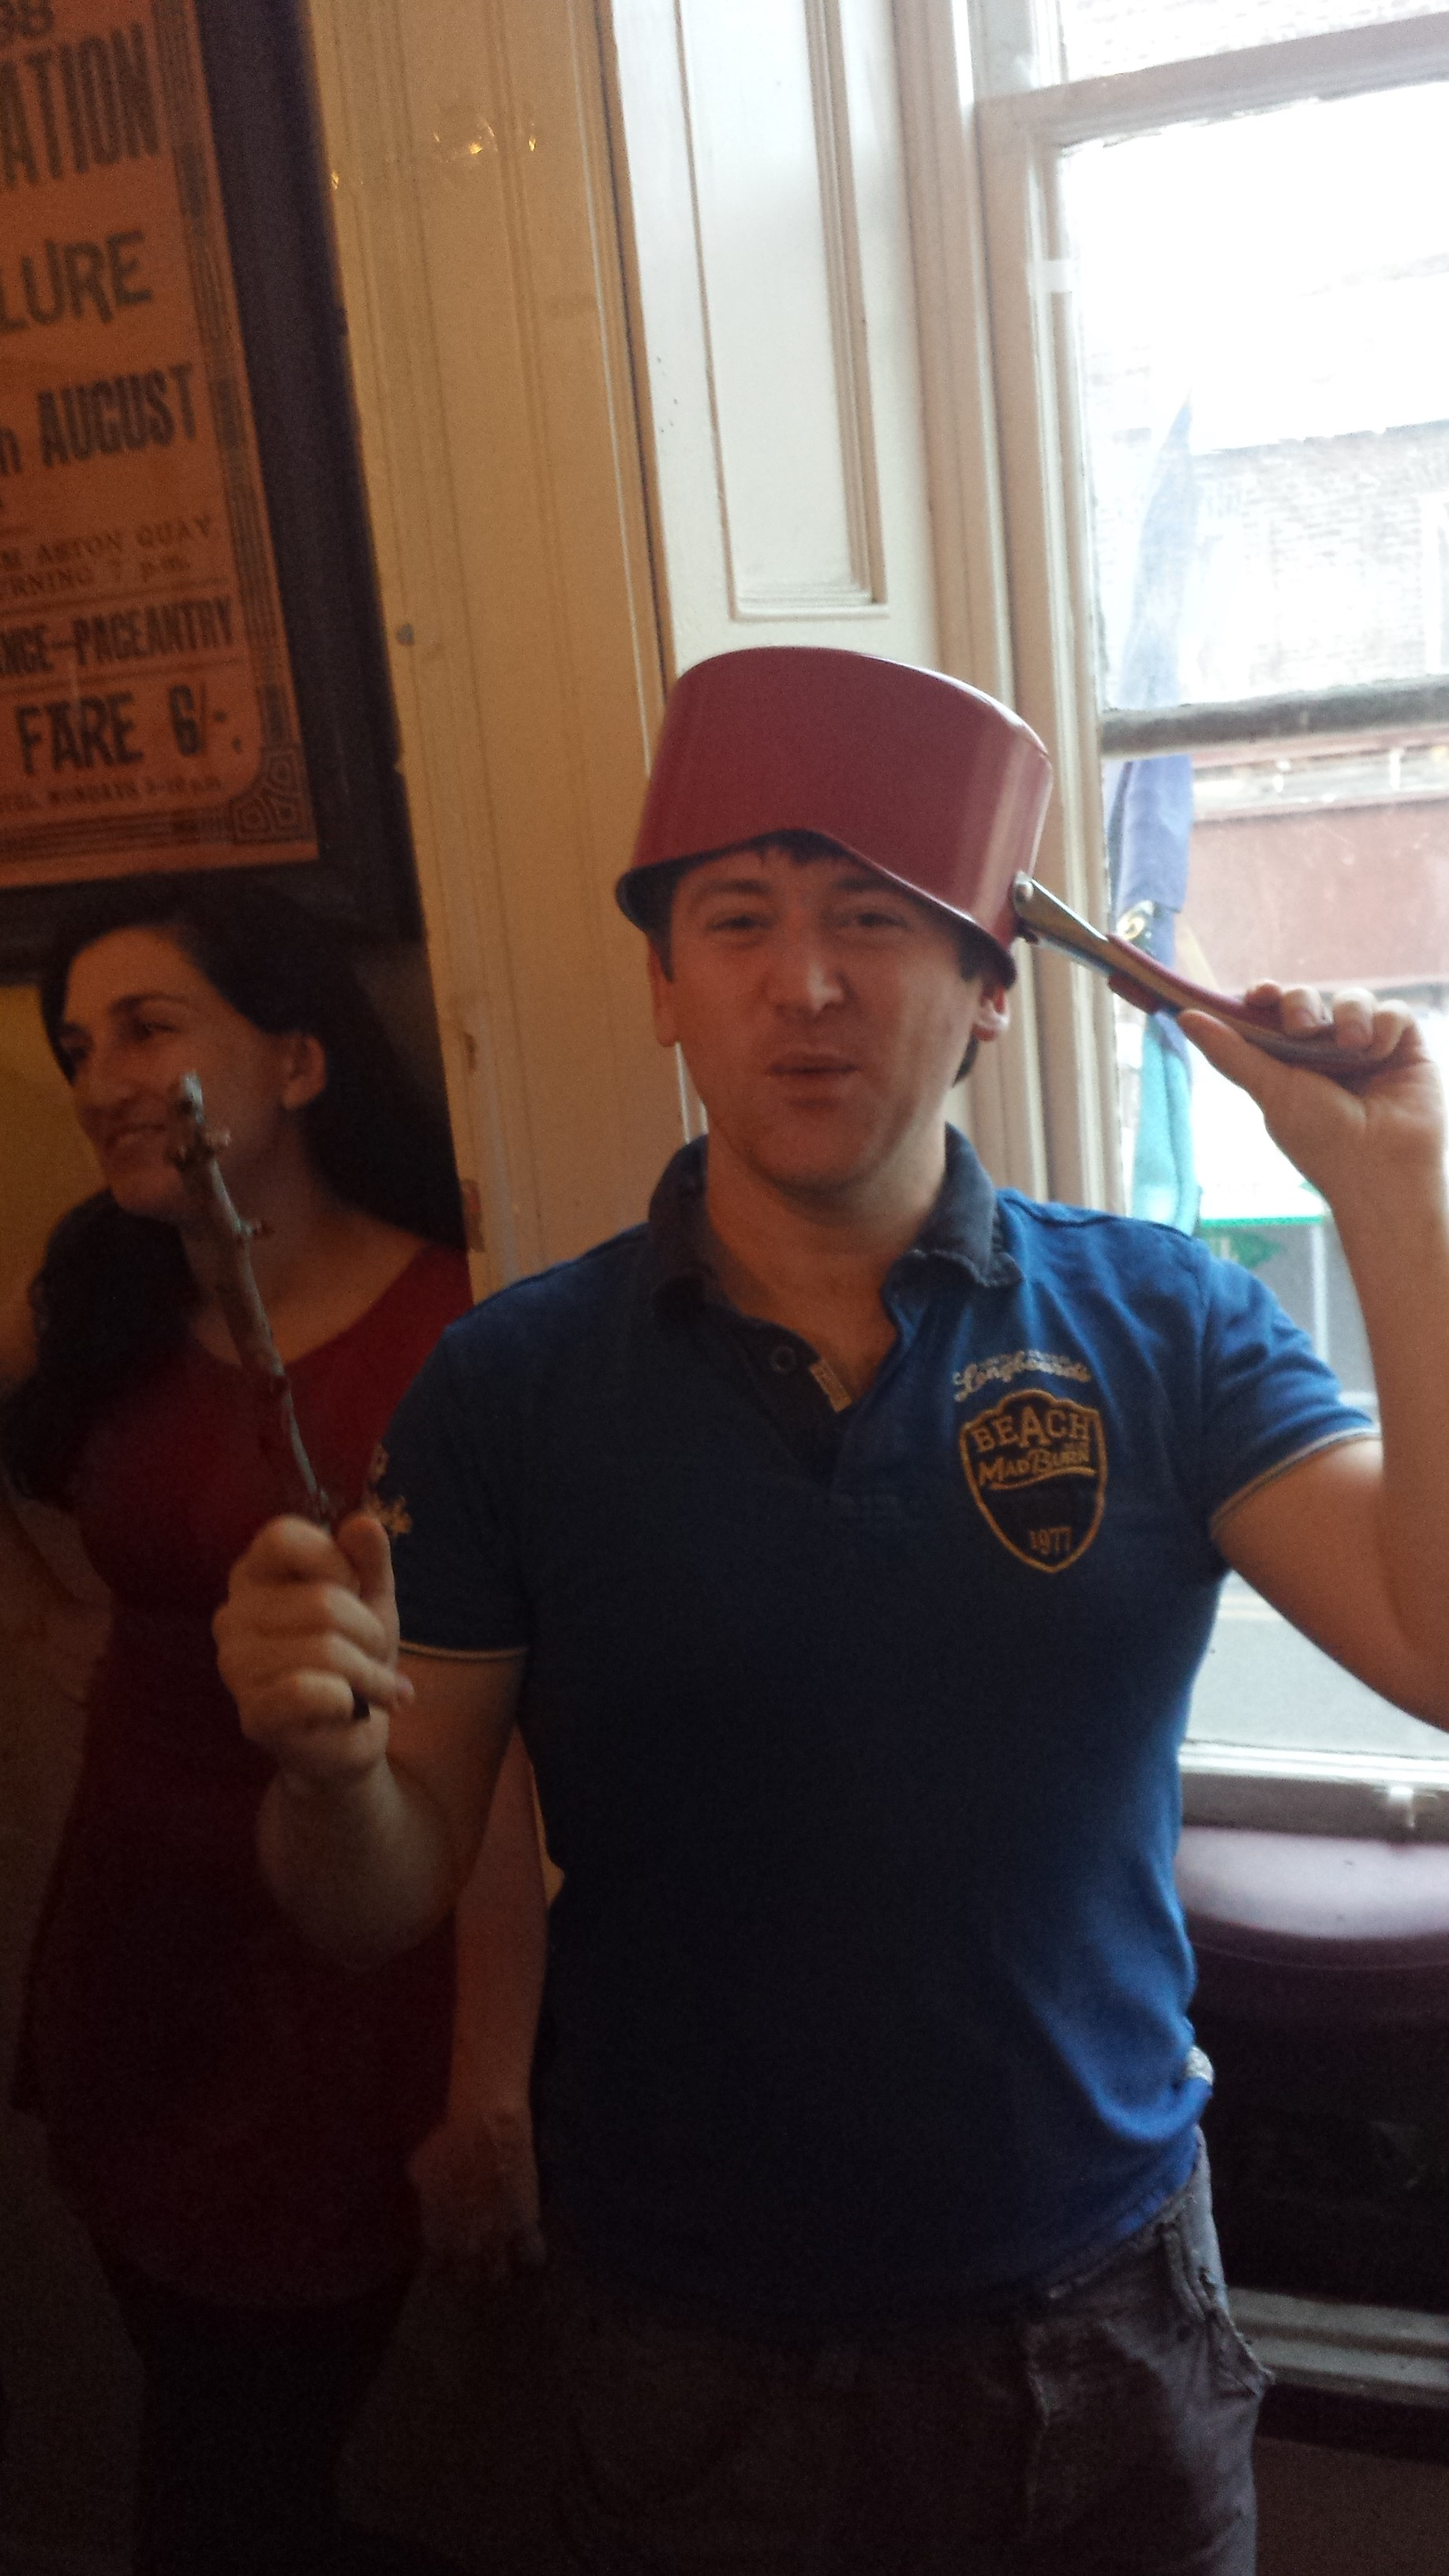 Colm engaging in a bit of cosplay at the Dungeoneering launch party in Dublin, July 2015, twig and cooking pot at the ready!